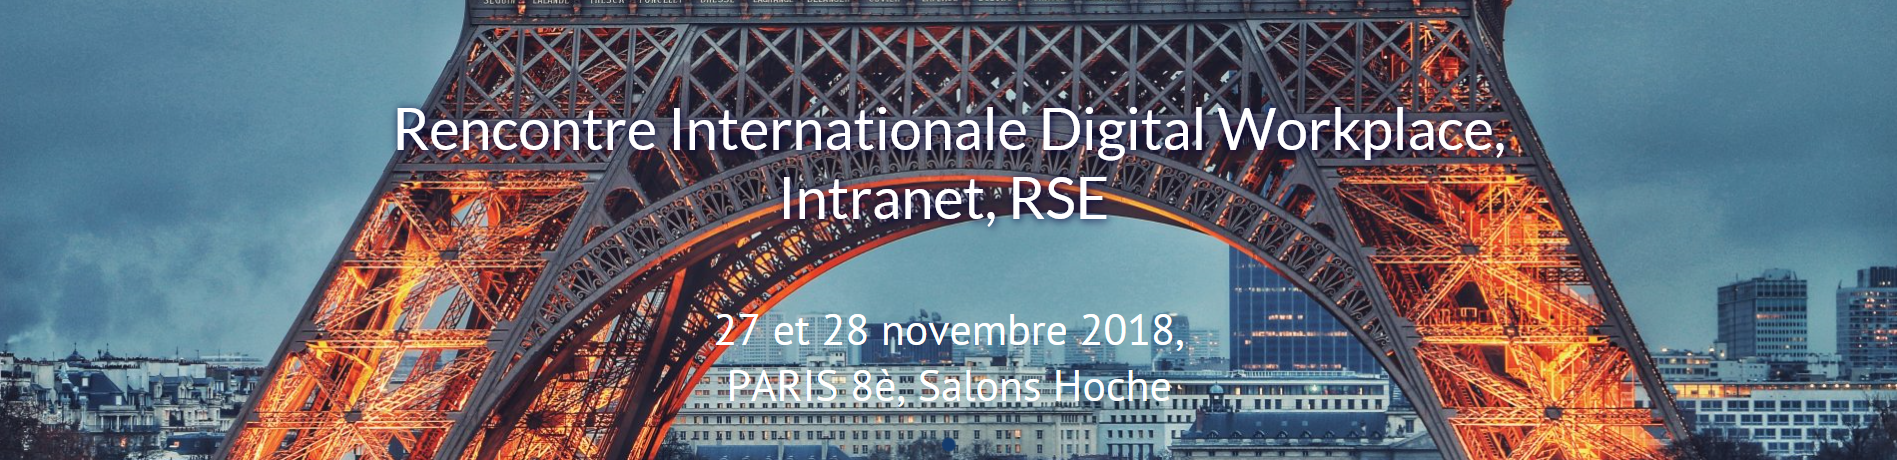 Infeeny sponsor de la rencontre internationale digital workplace intranet et rse